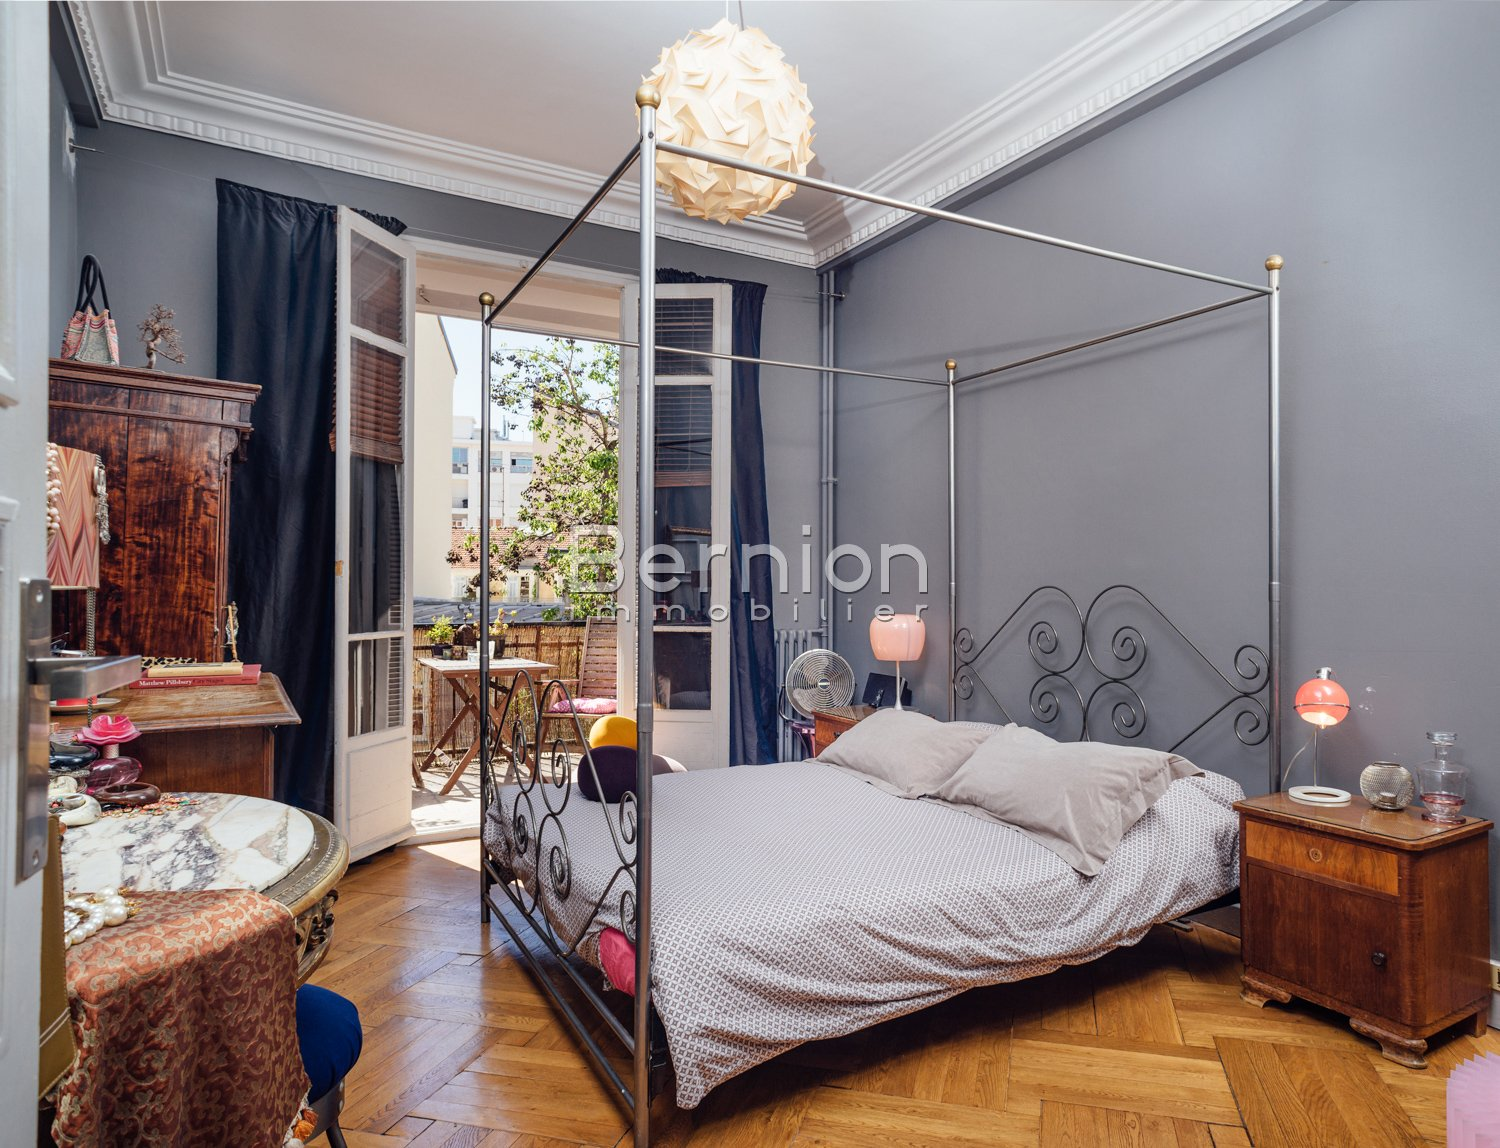 For Sale, Nice City Center Beautiful 72 sqm Apartment with terrace in Art Deco Building / photo 21